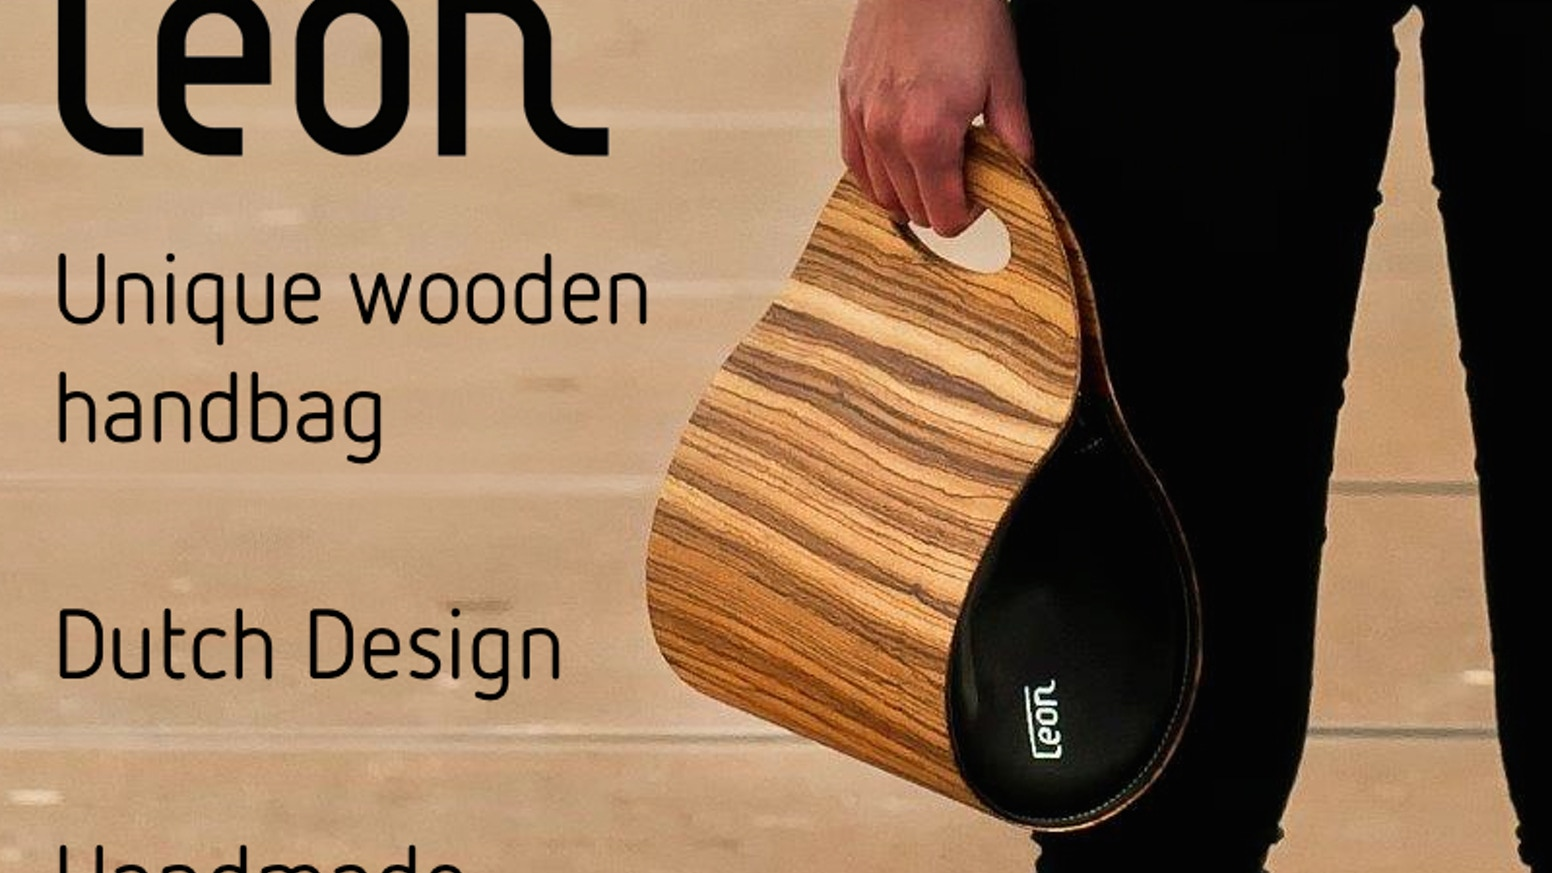 A flexible, elegant and strong wooden handbag for women. Easily stores your tablet and cell phone and looks gorgeous!